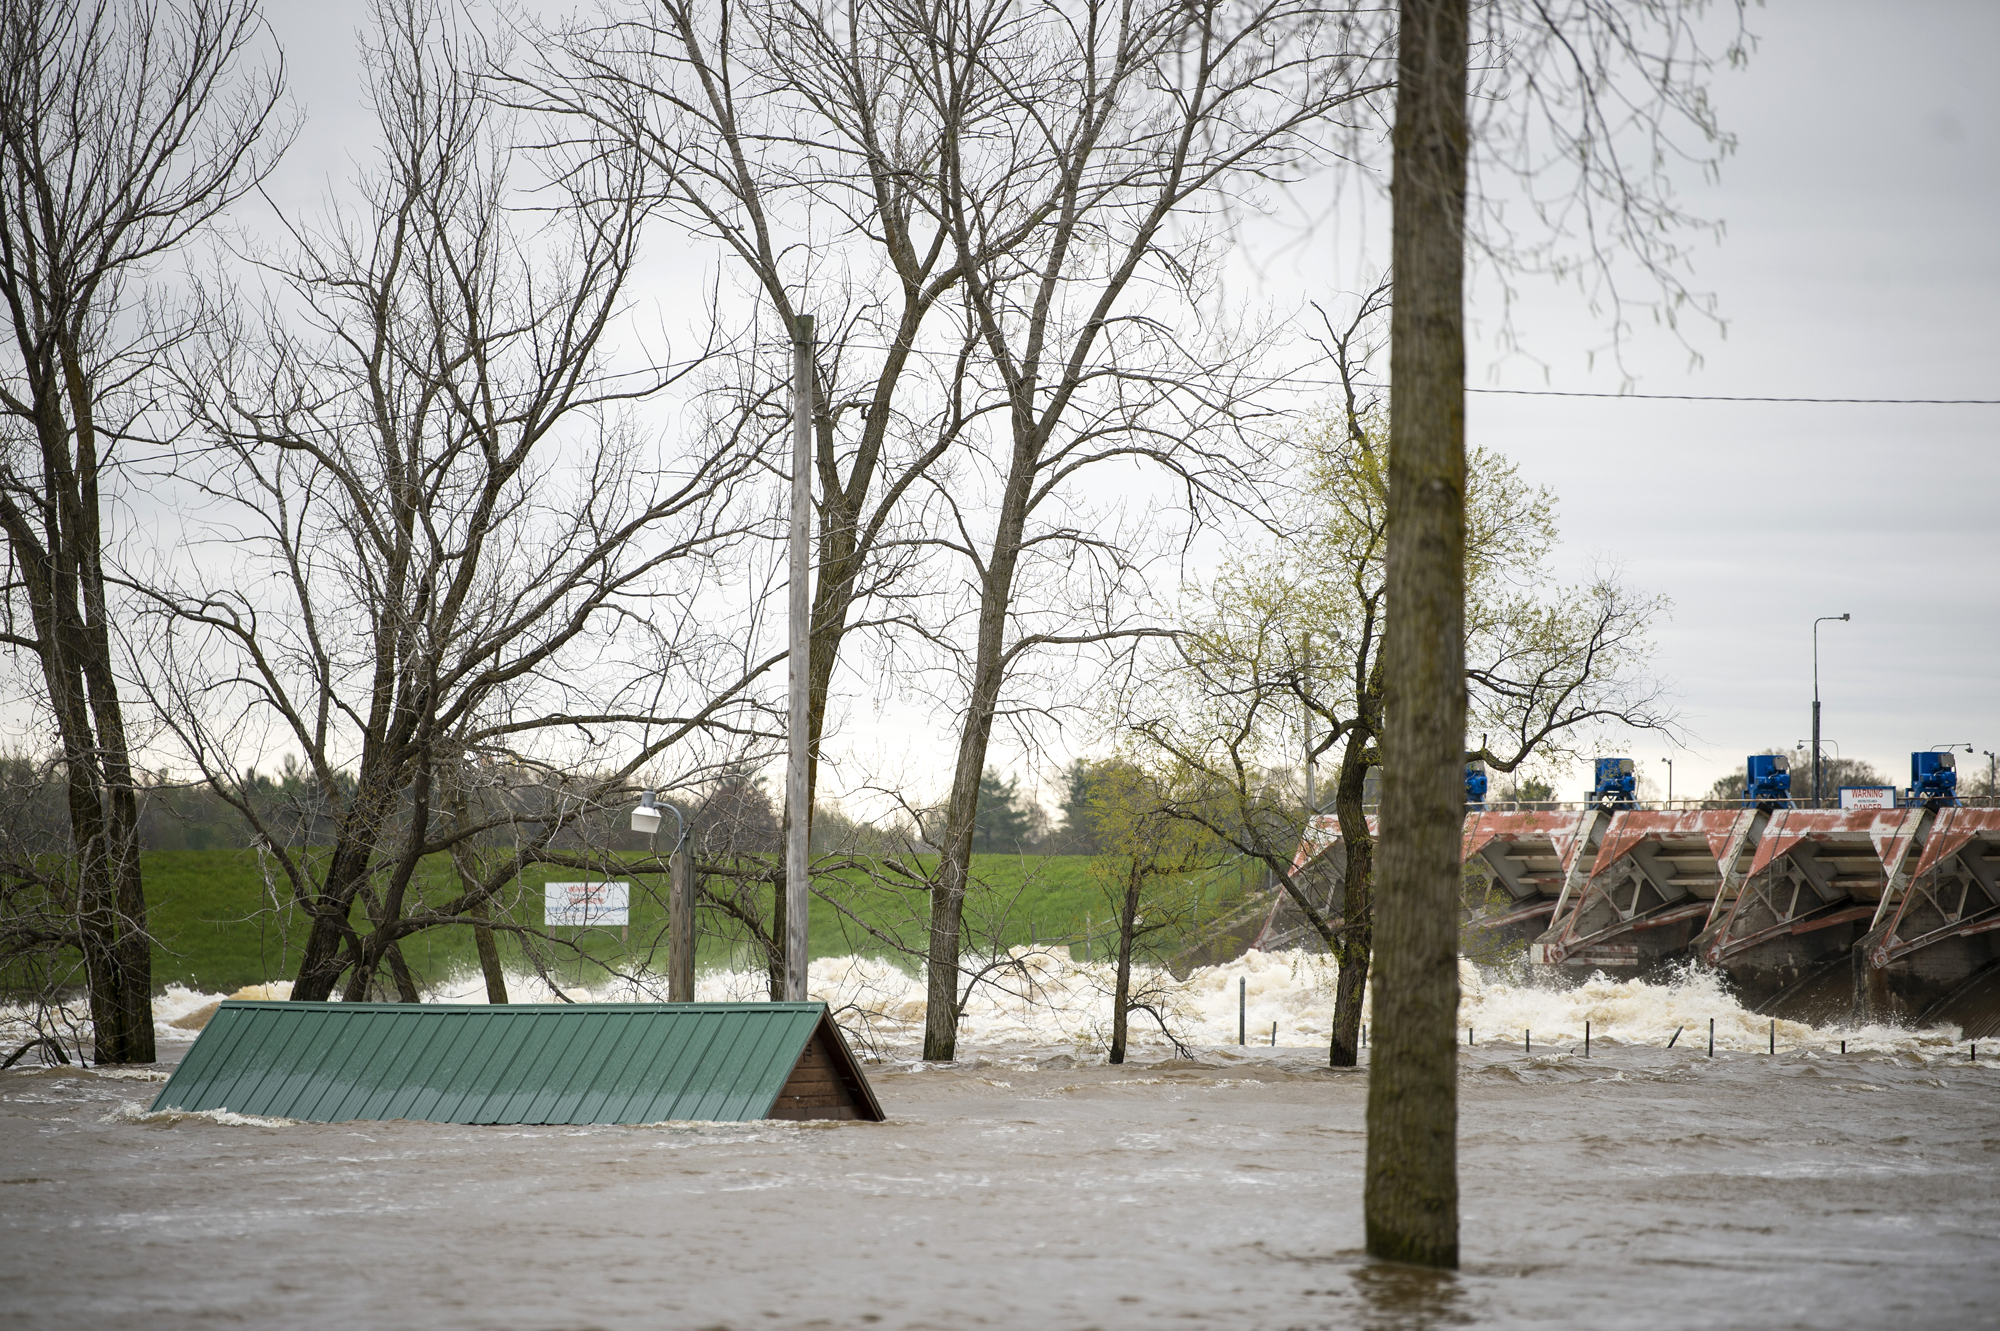 Dams in michigan break forcing thousands to evacuate